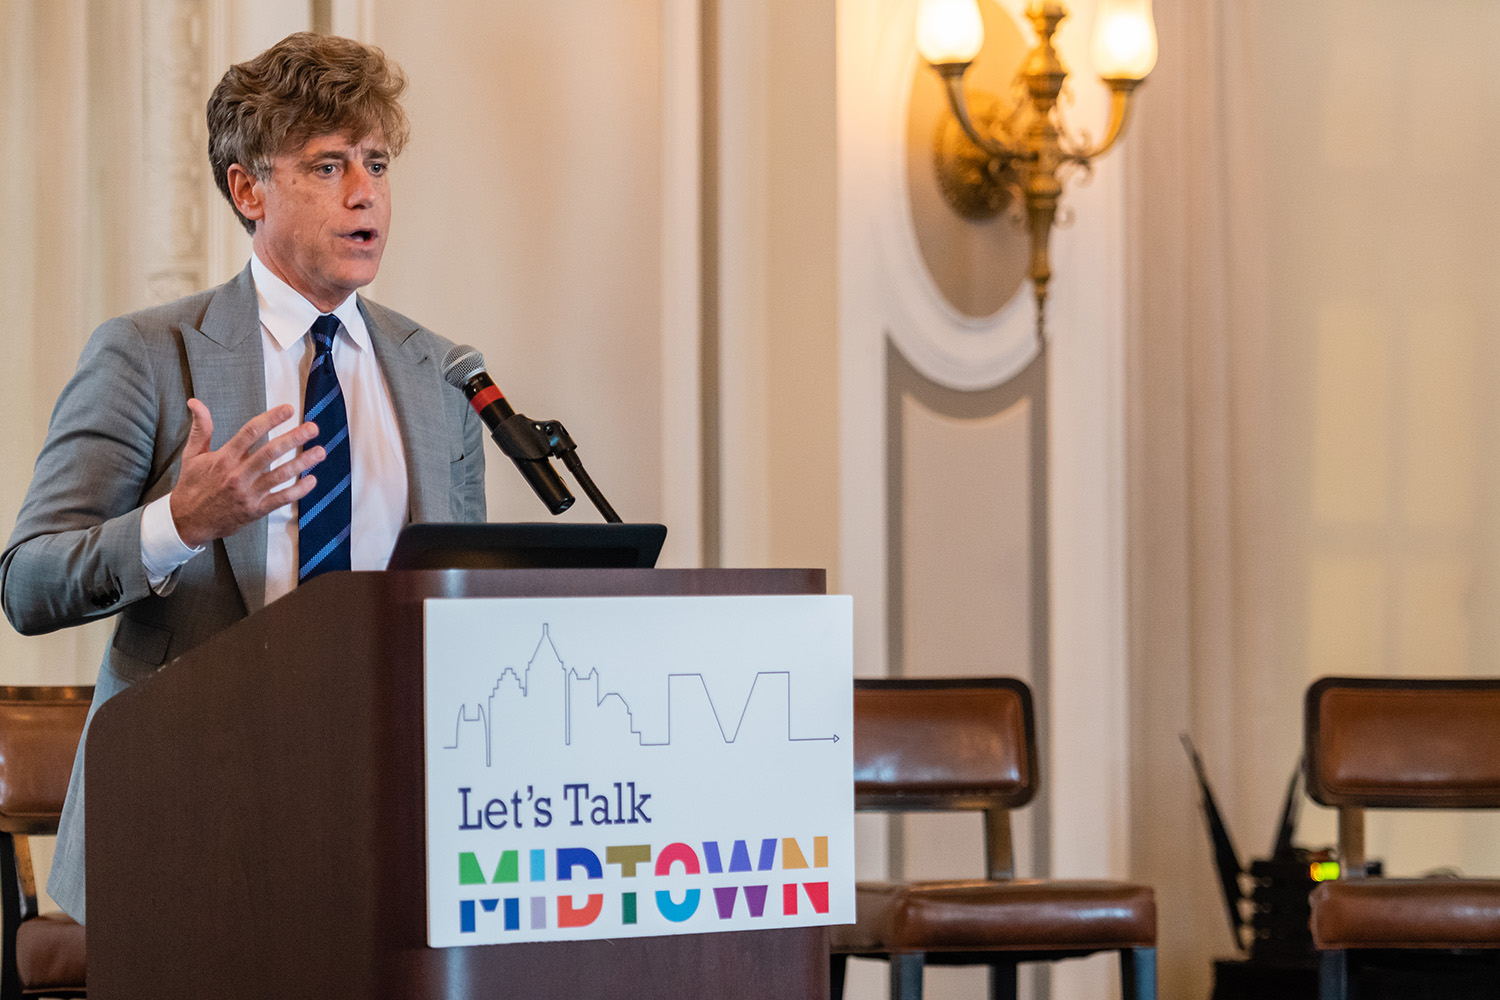 Tim Keane, City of Atlanta planning commissioner, speaks at a Let's Talk Midtown public forum event hosted by Midtown Alliance.